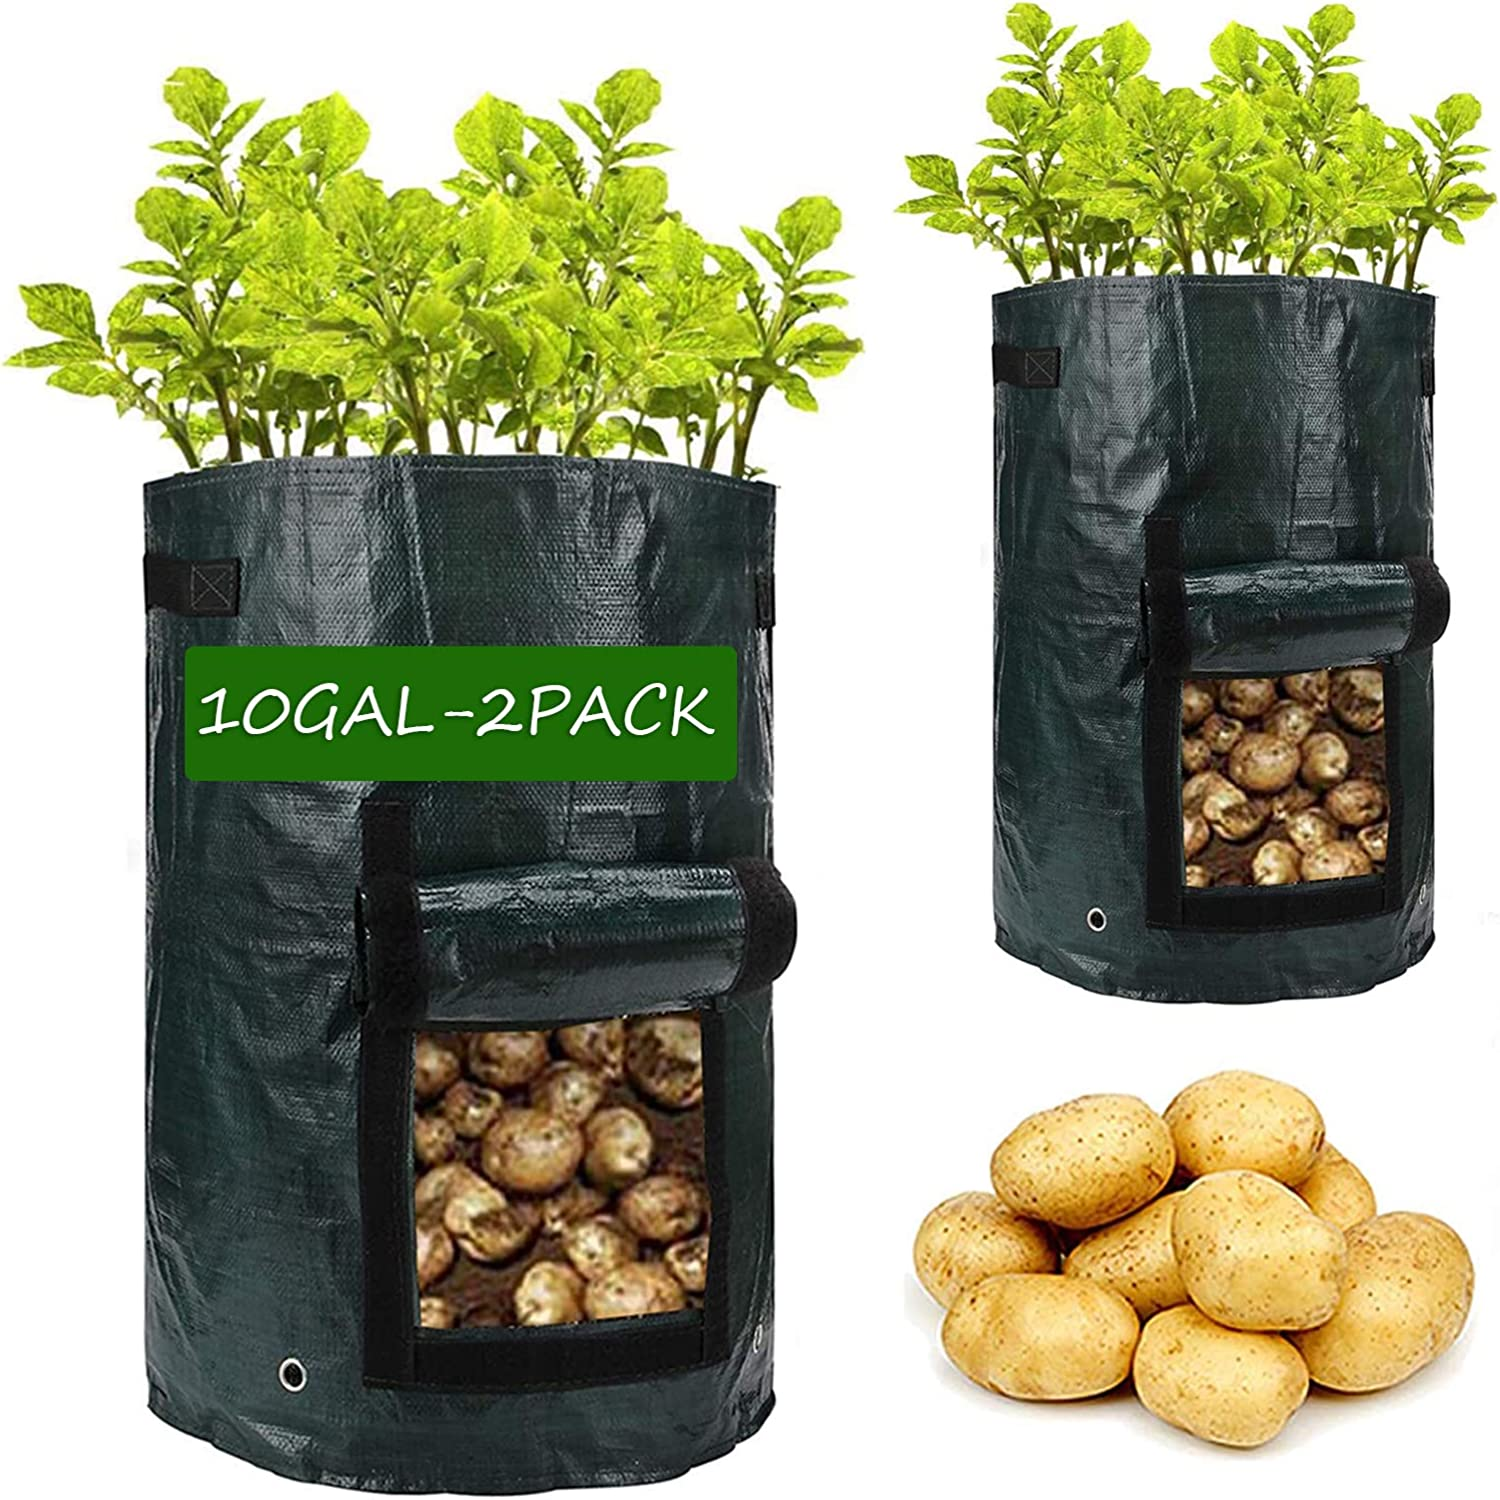 7 Gallon Ribukat 4 Pack Potato Grow Bags Gardening Plant Growing Bag with Window Handles /& Flap Bottom Holes Tomato Carrot Vegetable Planter Container for Planting Strawberries Vegetables